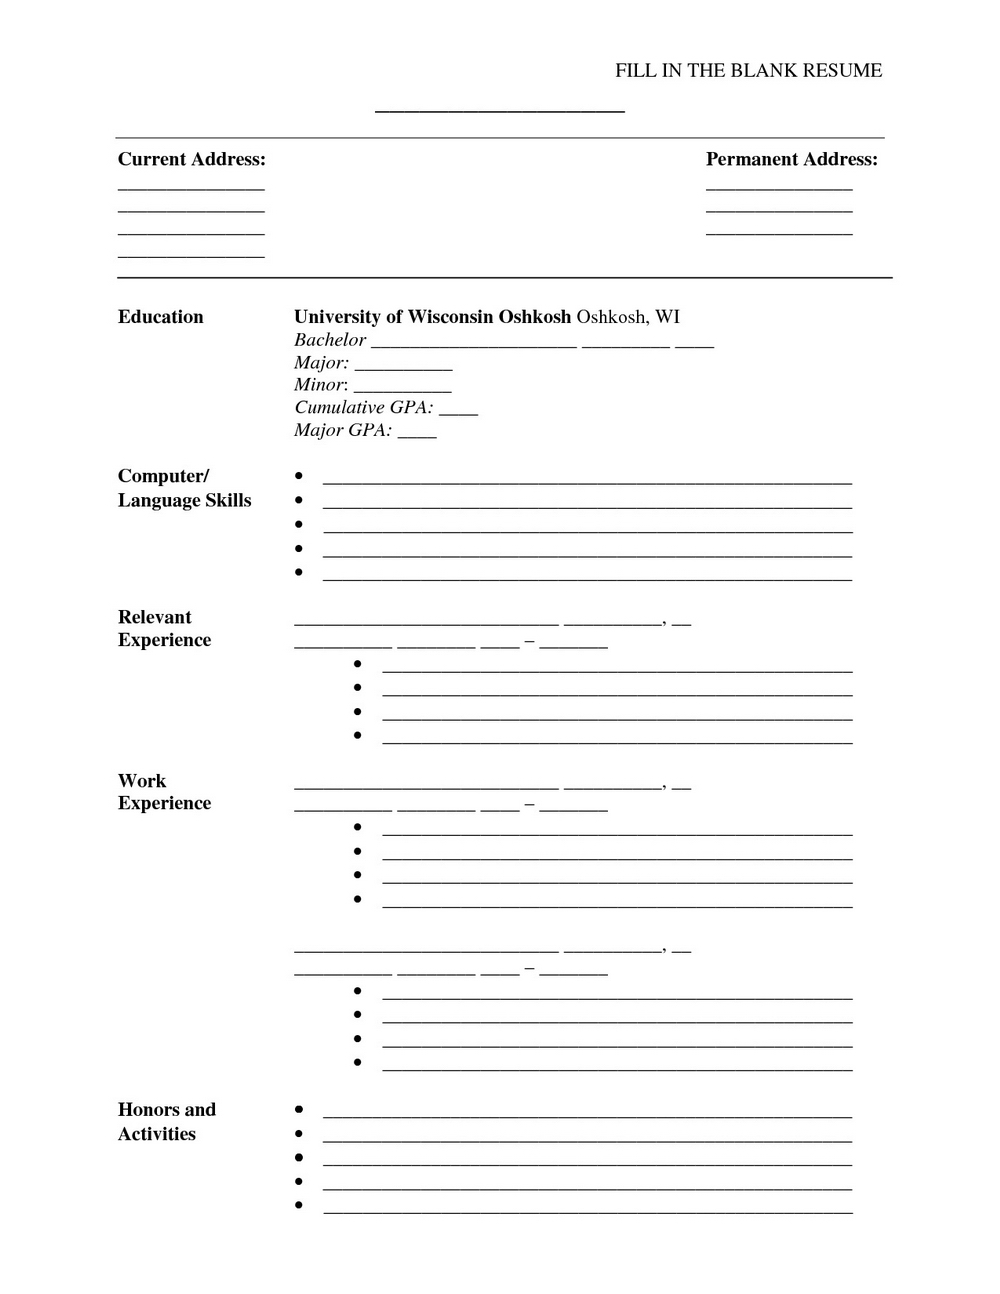 Fill In The Blank Resume Maker